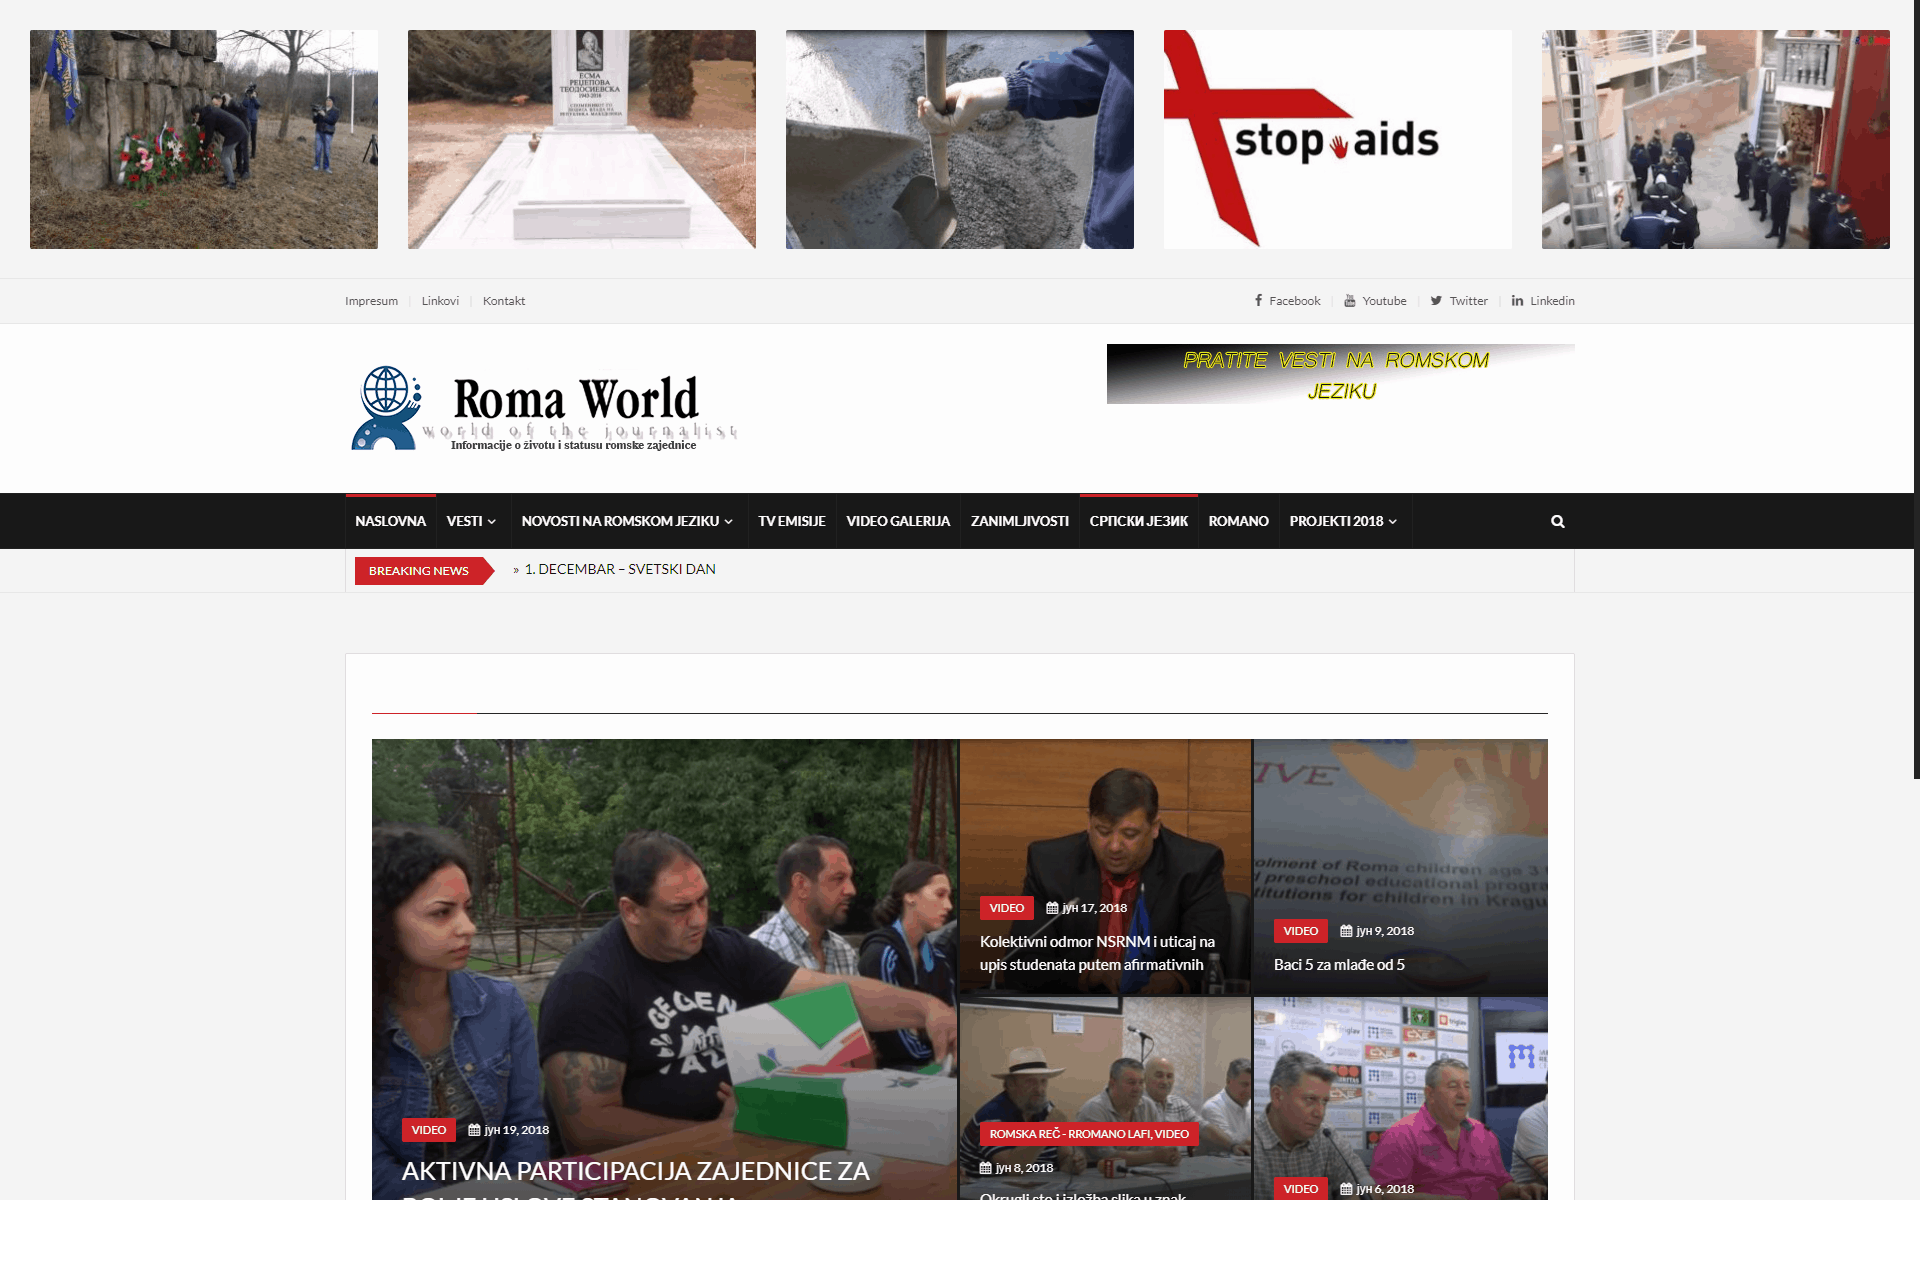 The story of the Roma World portal - Media Daily